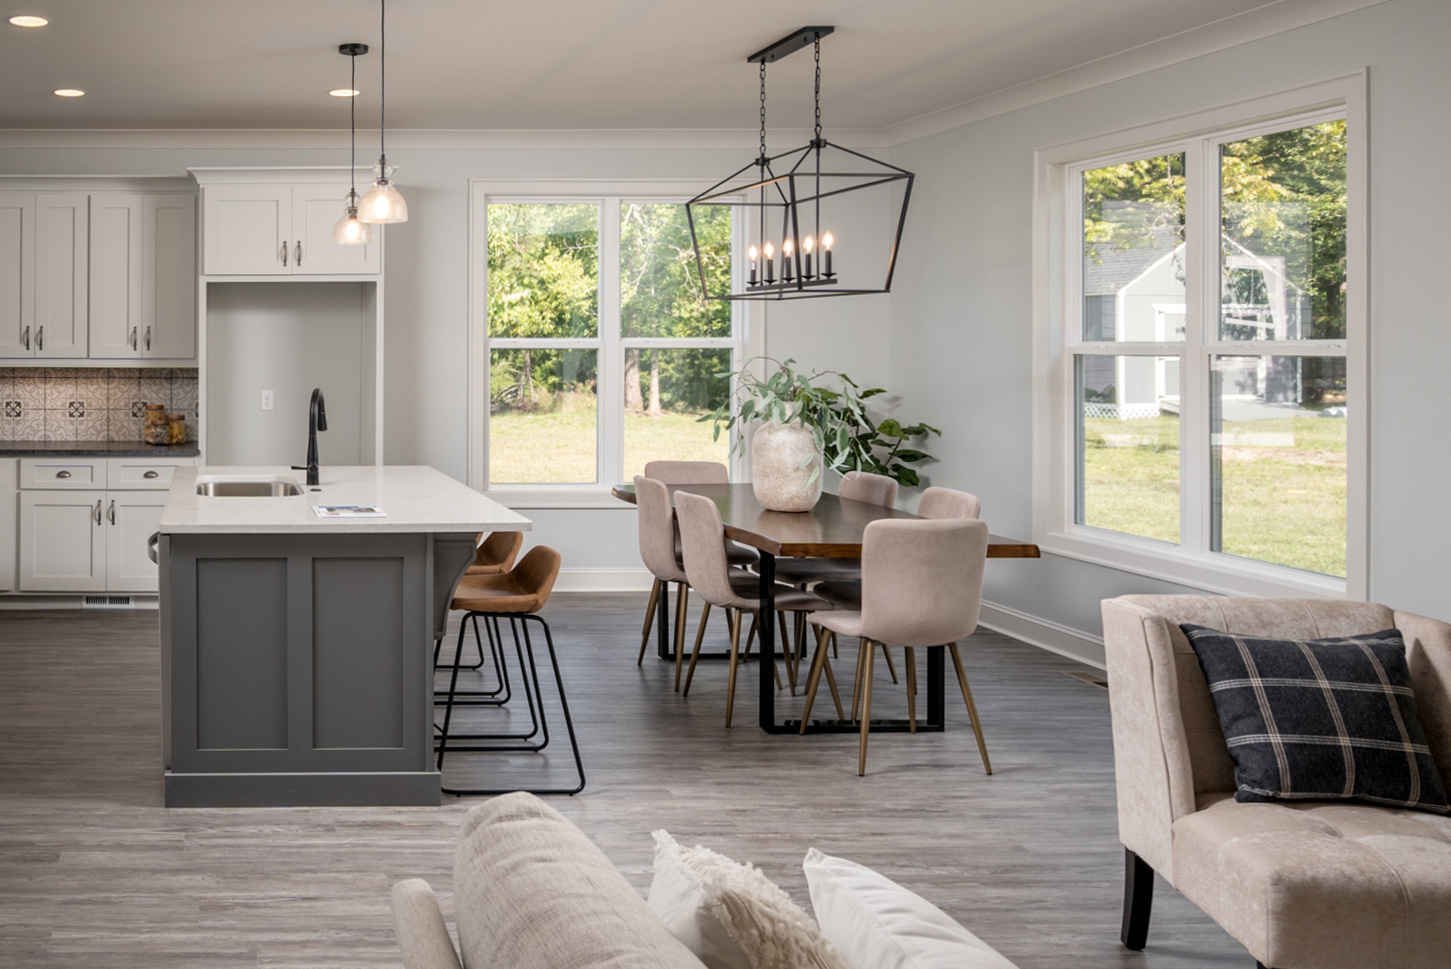 Cozy Kitchen in new construction home